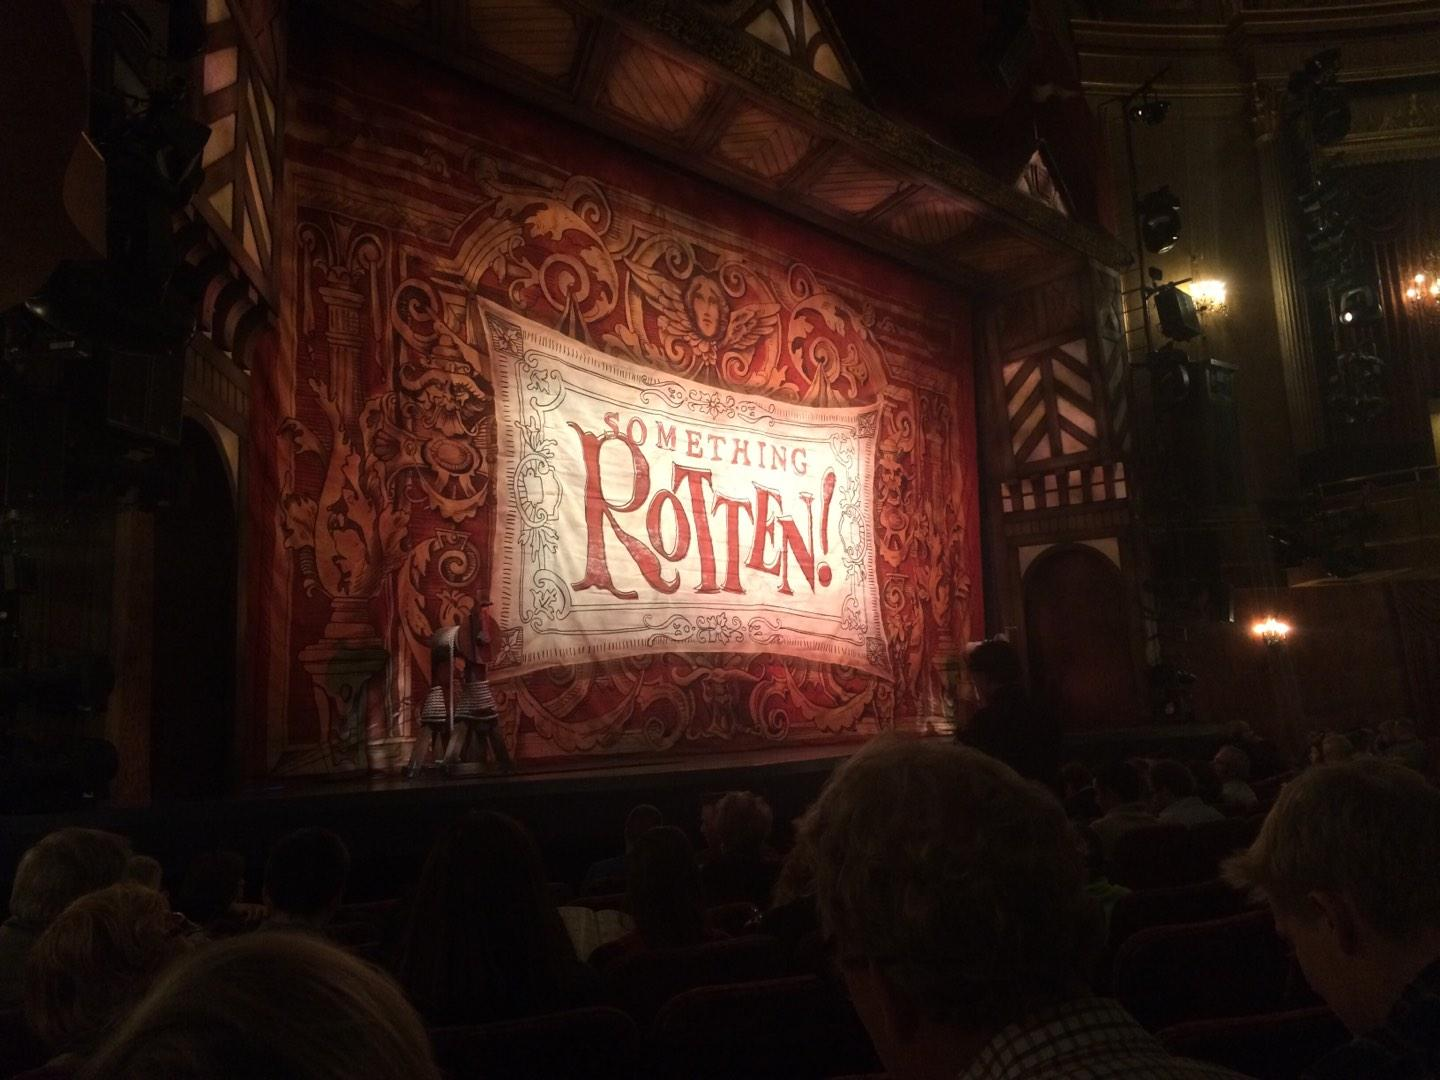 St. James Theatre Section Orch Row J Seat 19